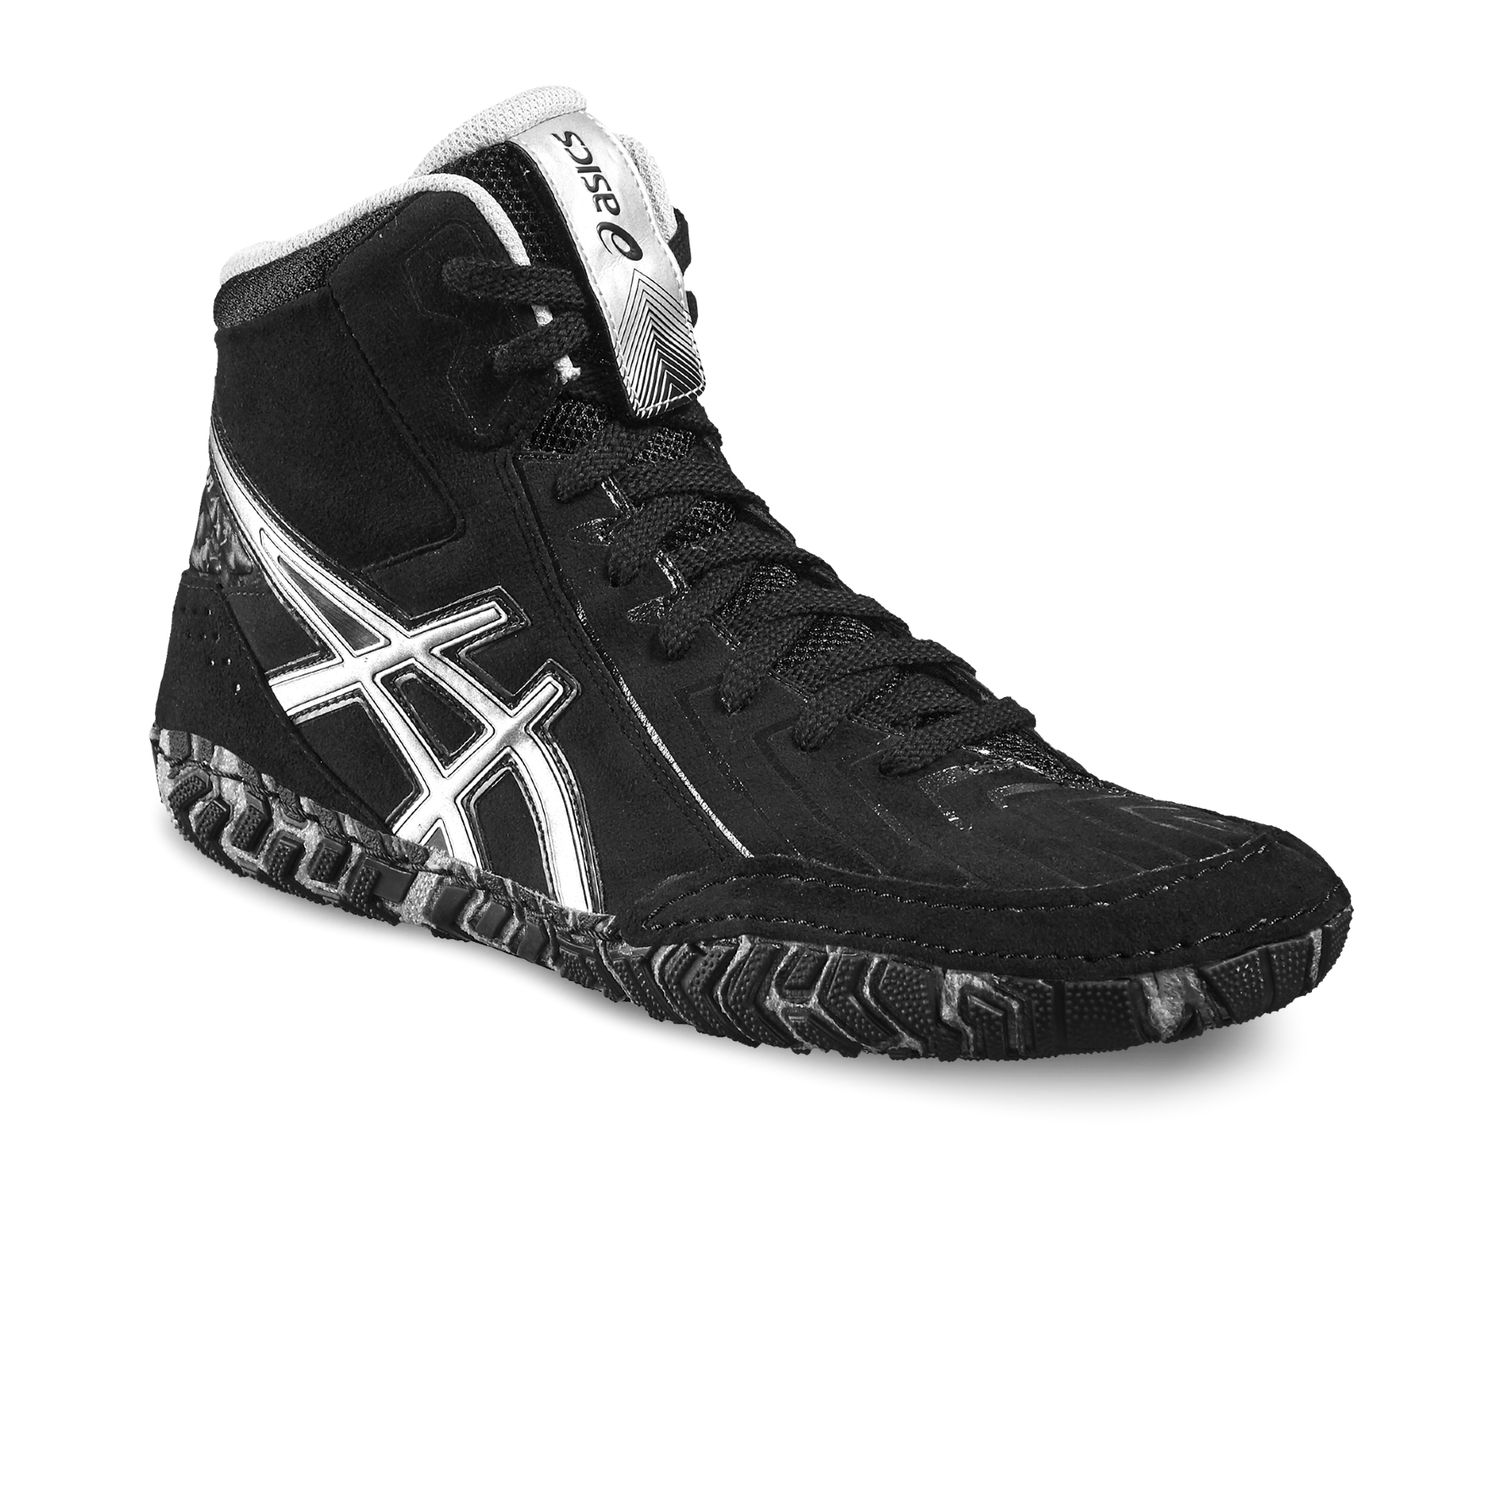 Best Asic Wrestling Shoes